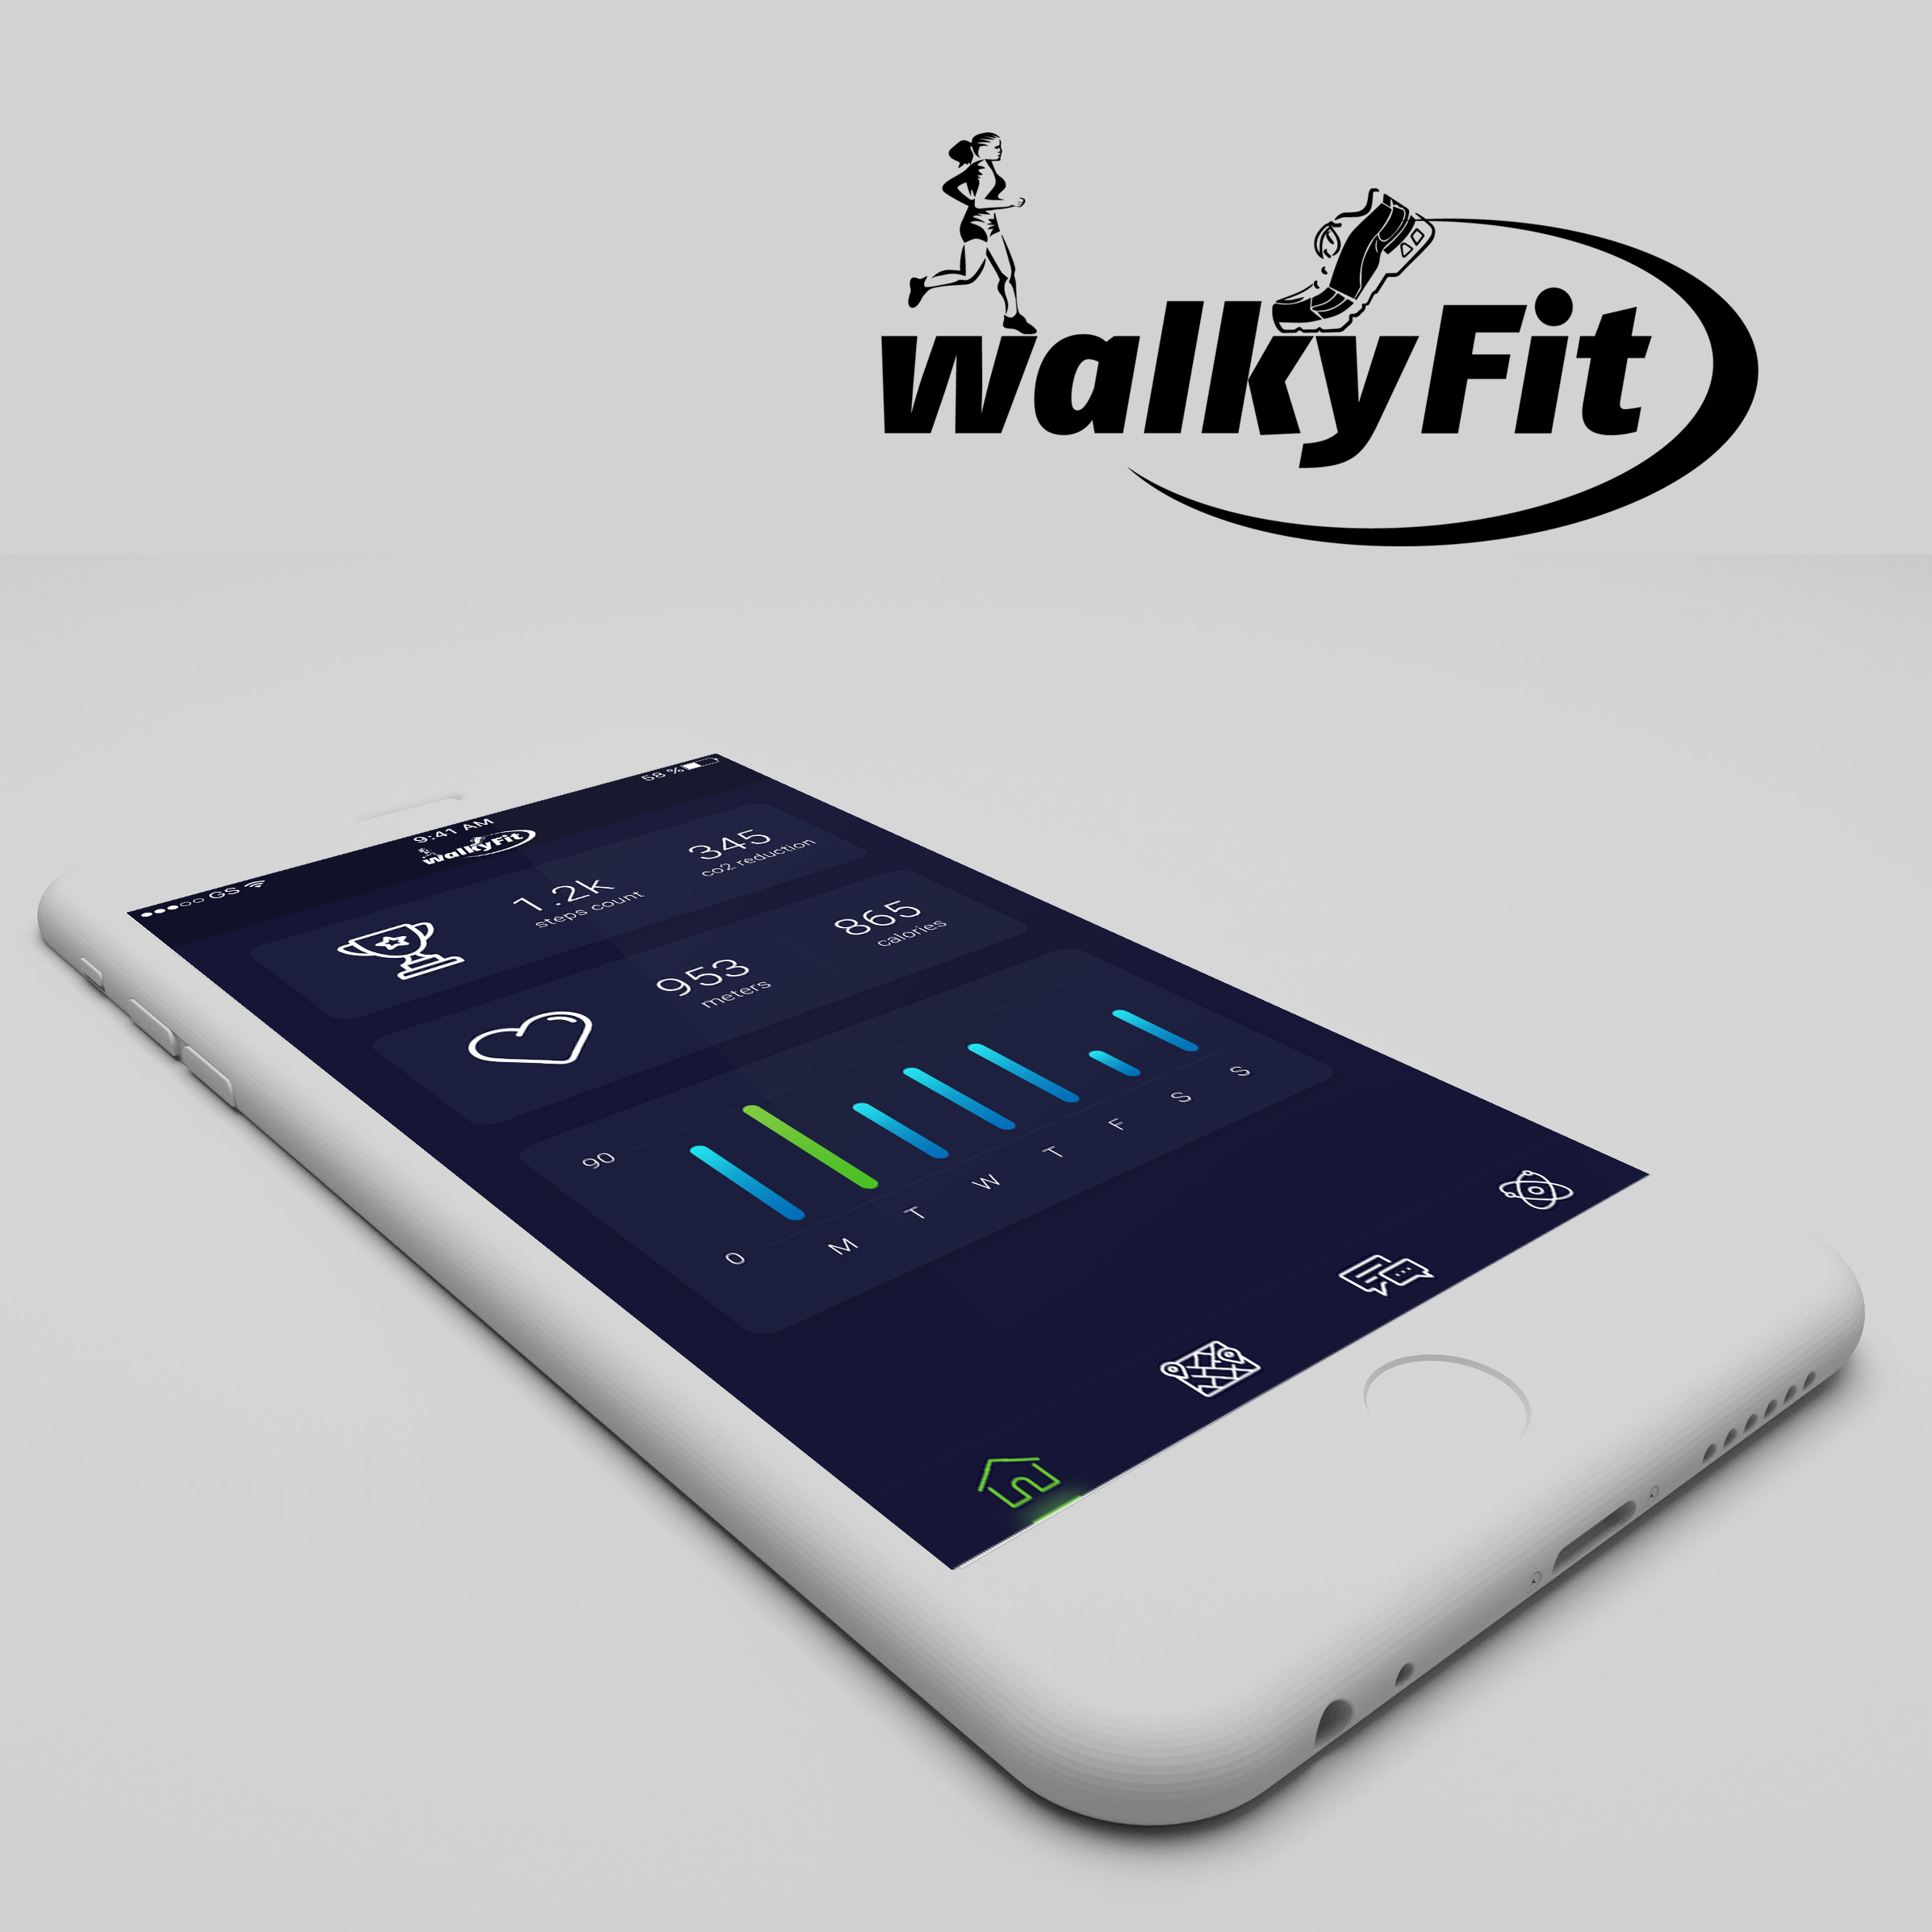 WalkyFit (cryptocurrency for activities)